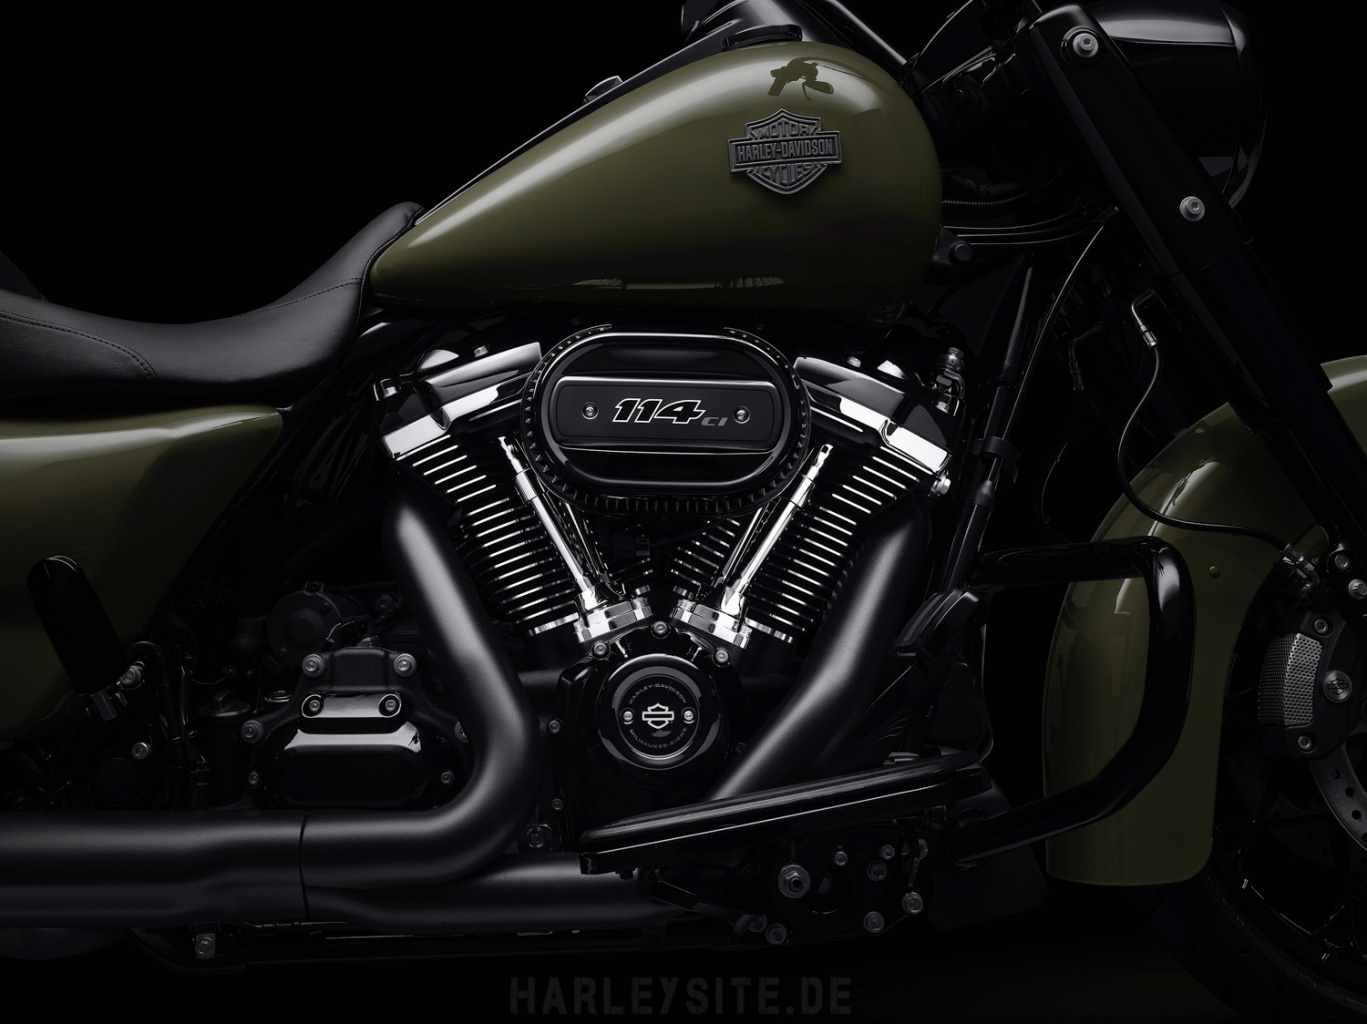 114cui Milwaukee-Eight Motor Road King Special 2021